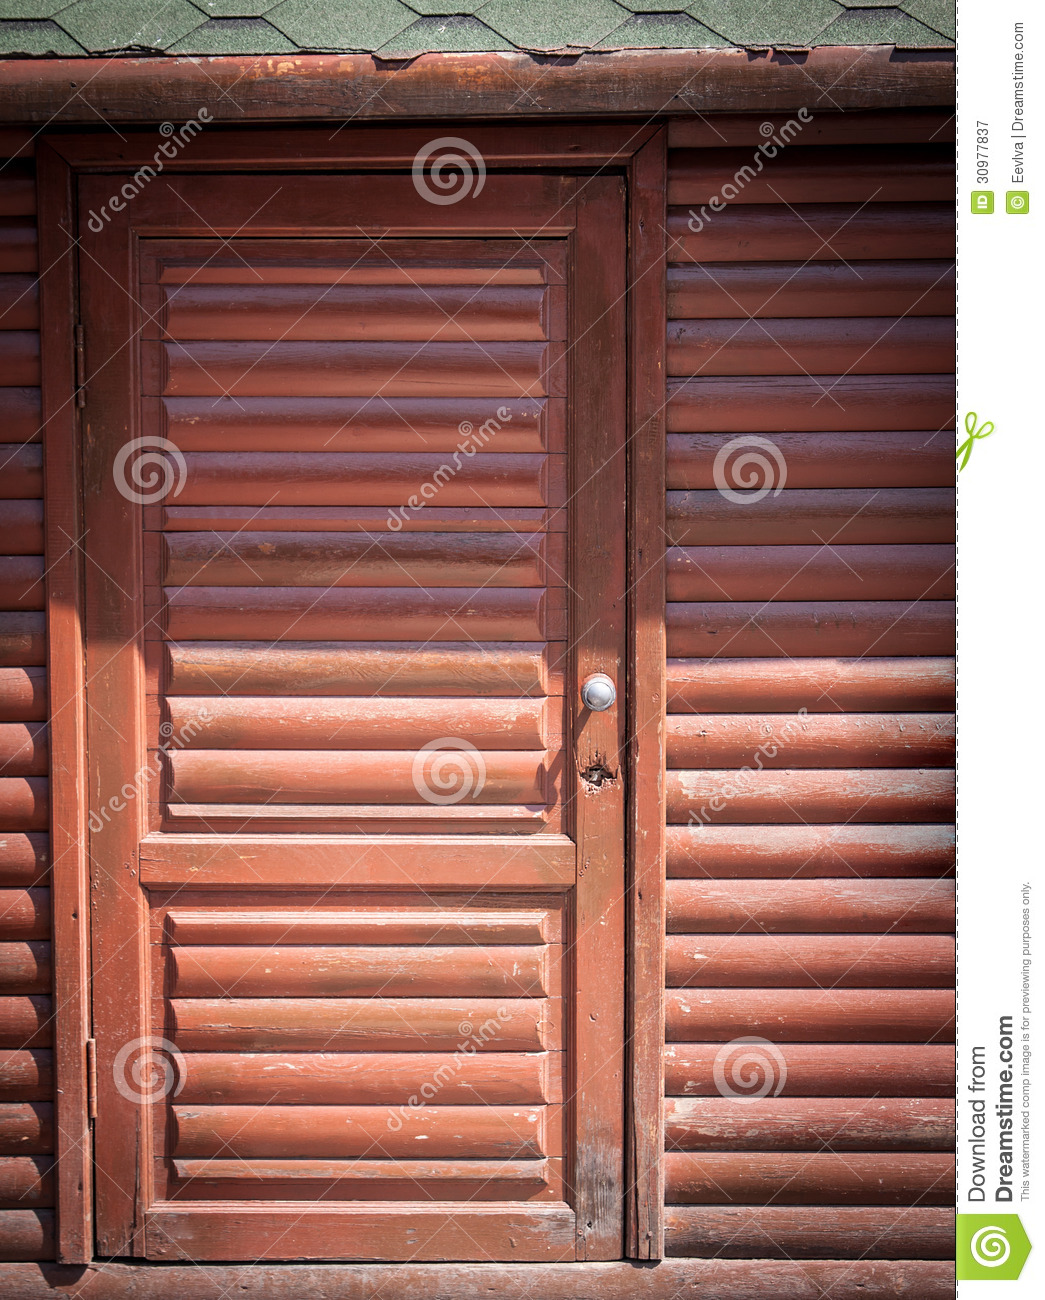 Rustic wood frame front and back stock photo for Wooden back door and frame